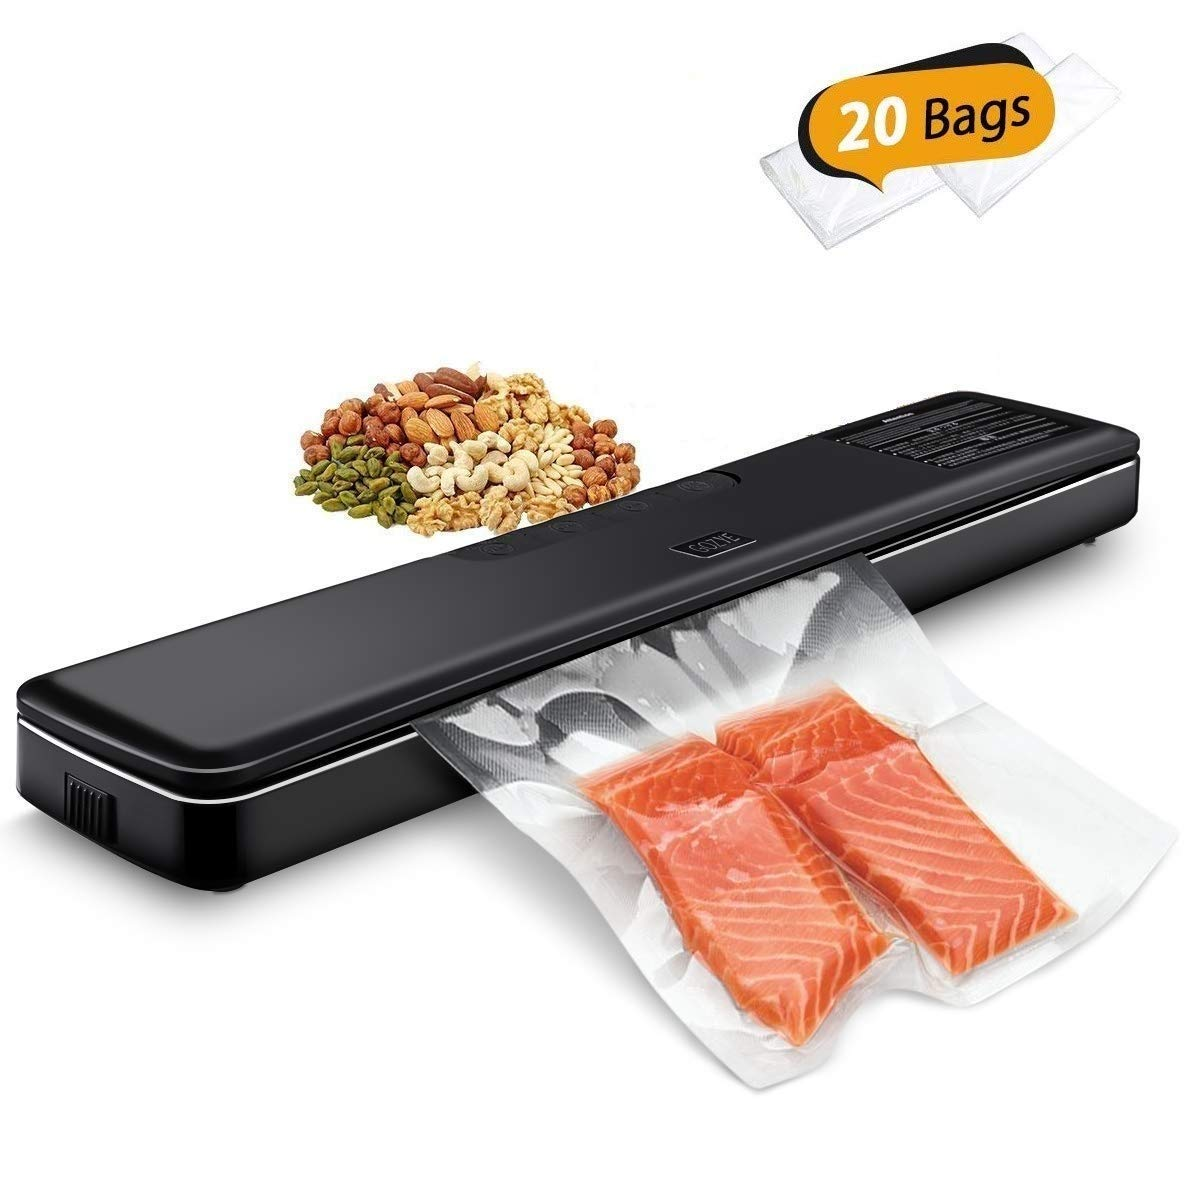 Vacuum Sealer Machine By GOZYE,Automatic Vacuum Air Sealing System For Food Preservation,Multi-use Home Vacuum Packing Machine With 20 sealing Bags Kit,Dry Moist Food Modes